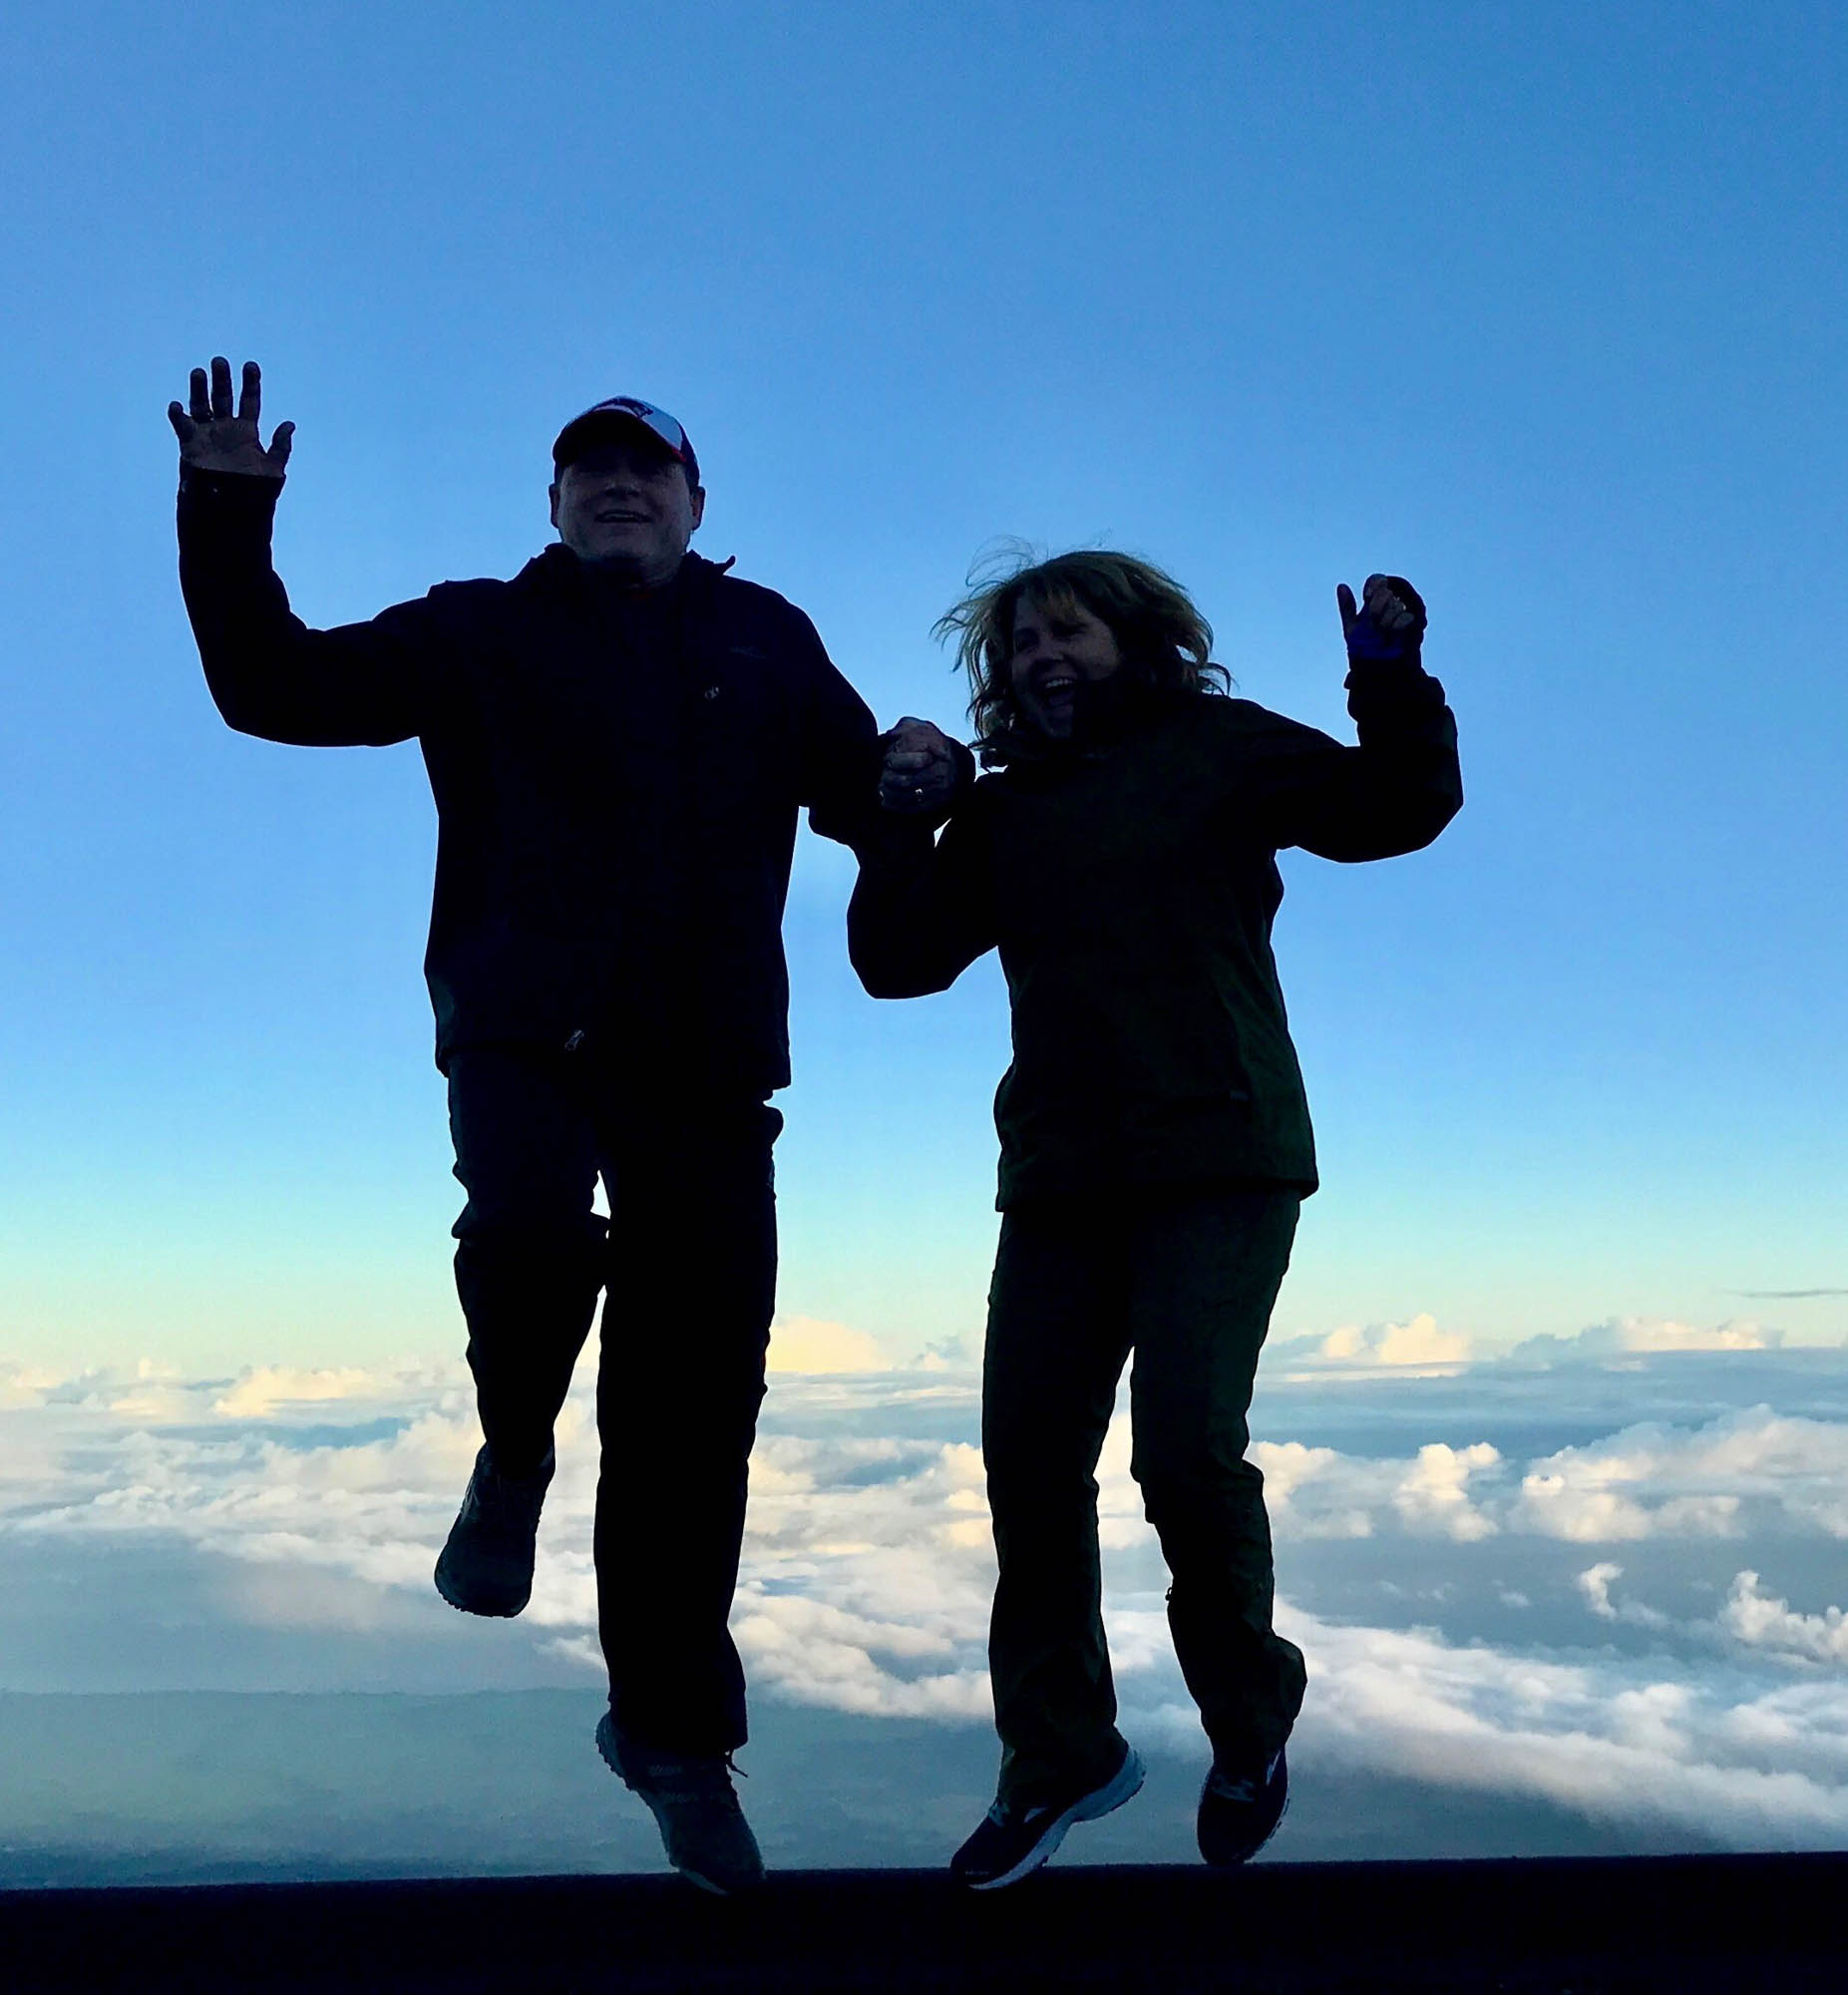 Couple jumping, holding hands, blue sky